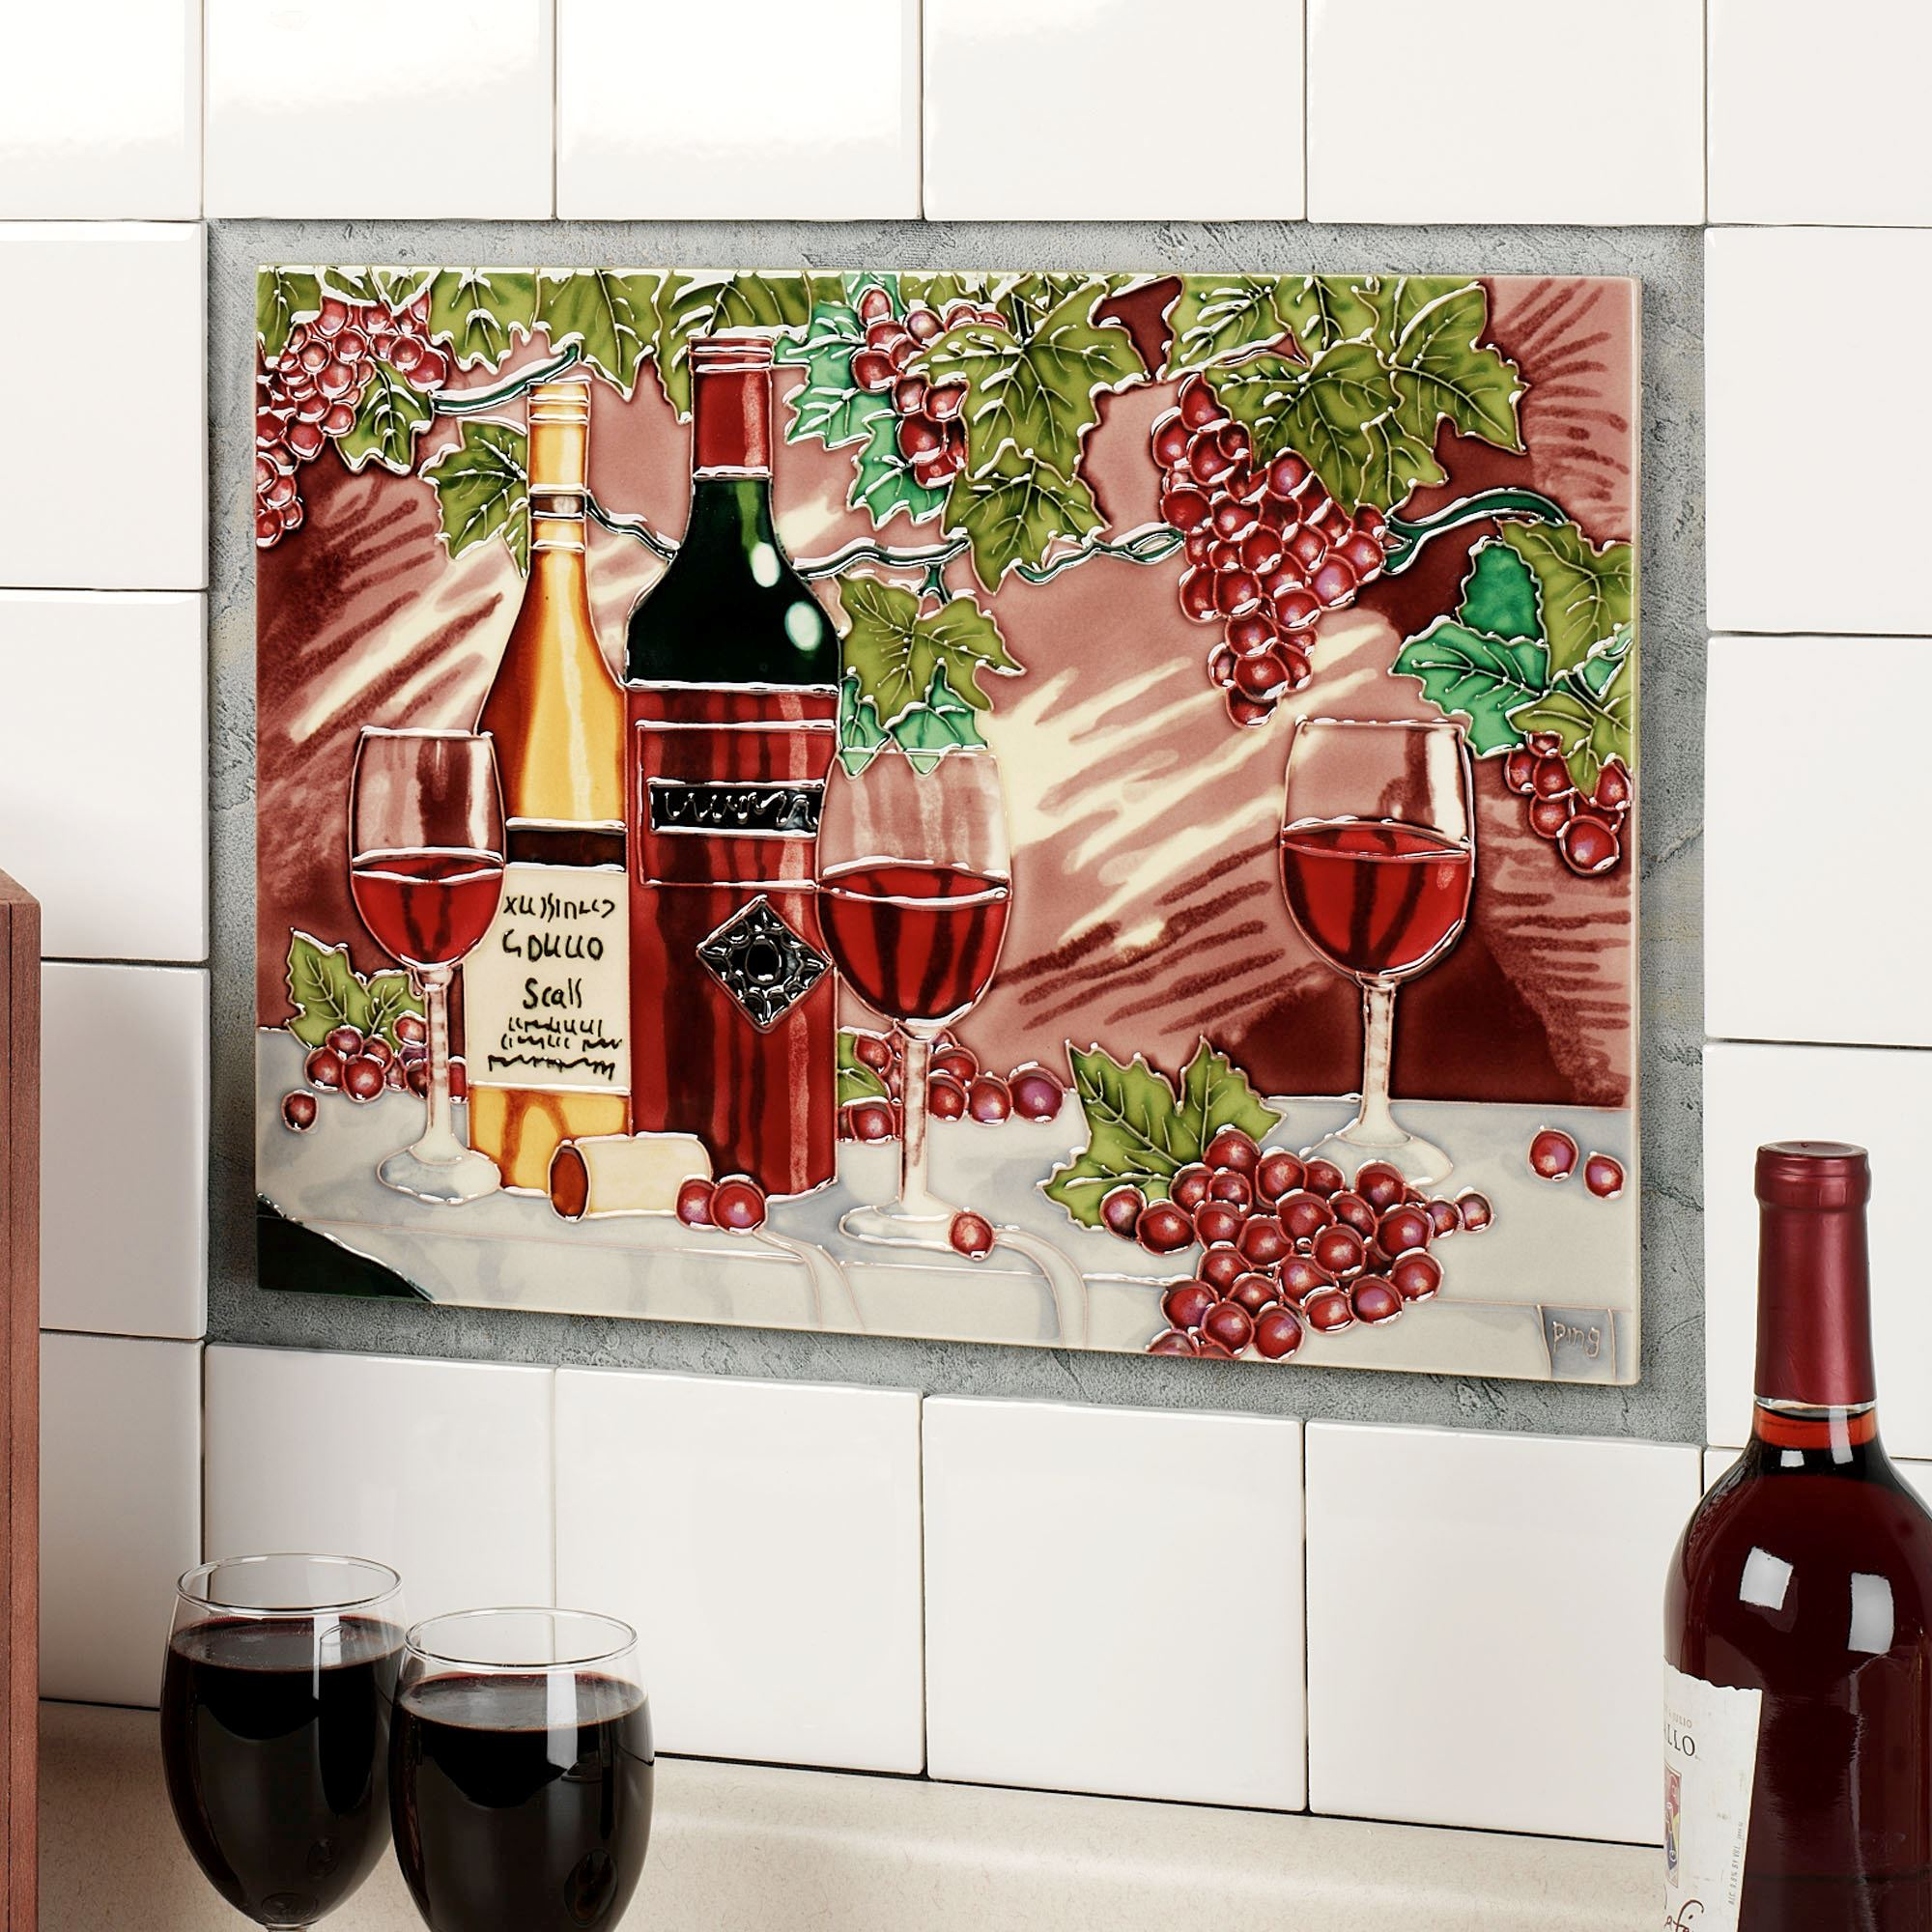 At the winery ceramic tile wall art ceramic tile wall art at the winery wall art red click to expand dailygadgetfo Images